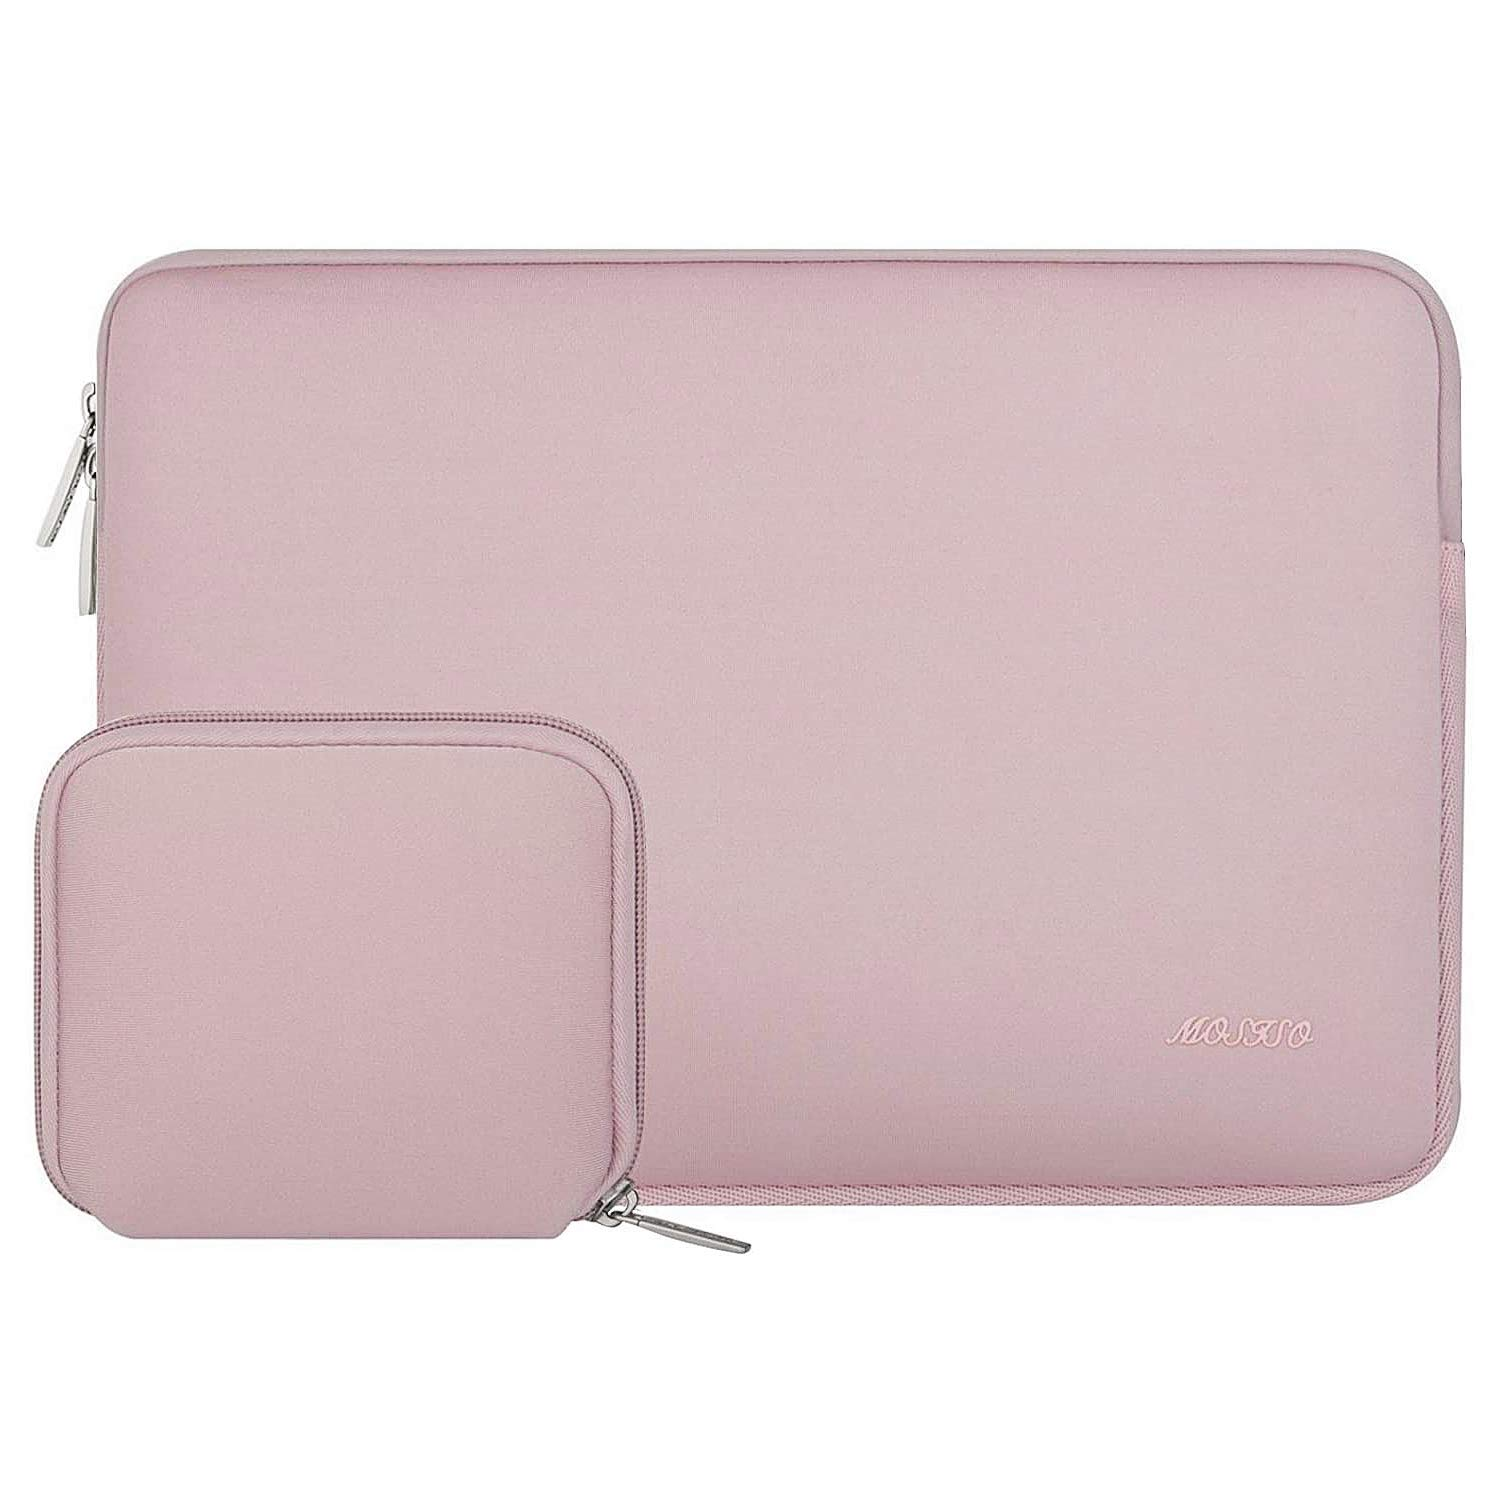 MOSISO Laptop Sleeve Compatible with 2019 MacBook Pro 16 inch Touch Bar A2141, 15-15.6 inch MacBook Pro Retina 2012-2015, Notebook, Water Repellent Neoprene Bag with Small Case, Baby Pink